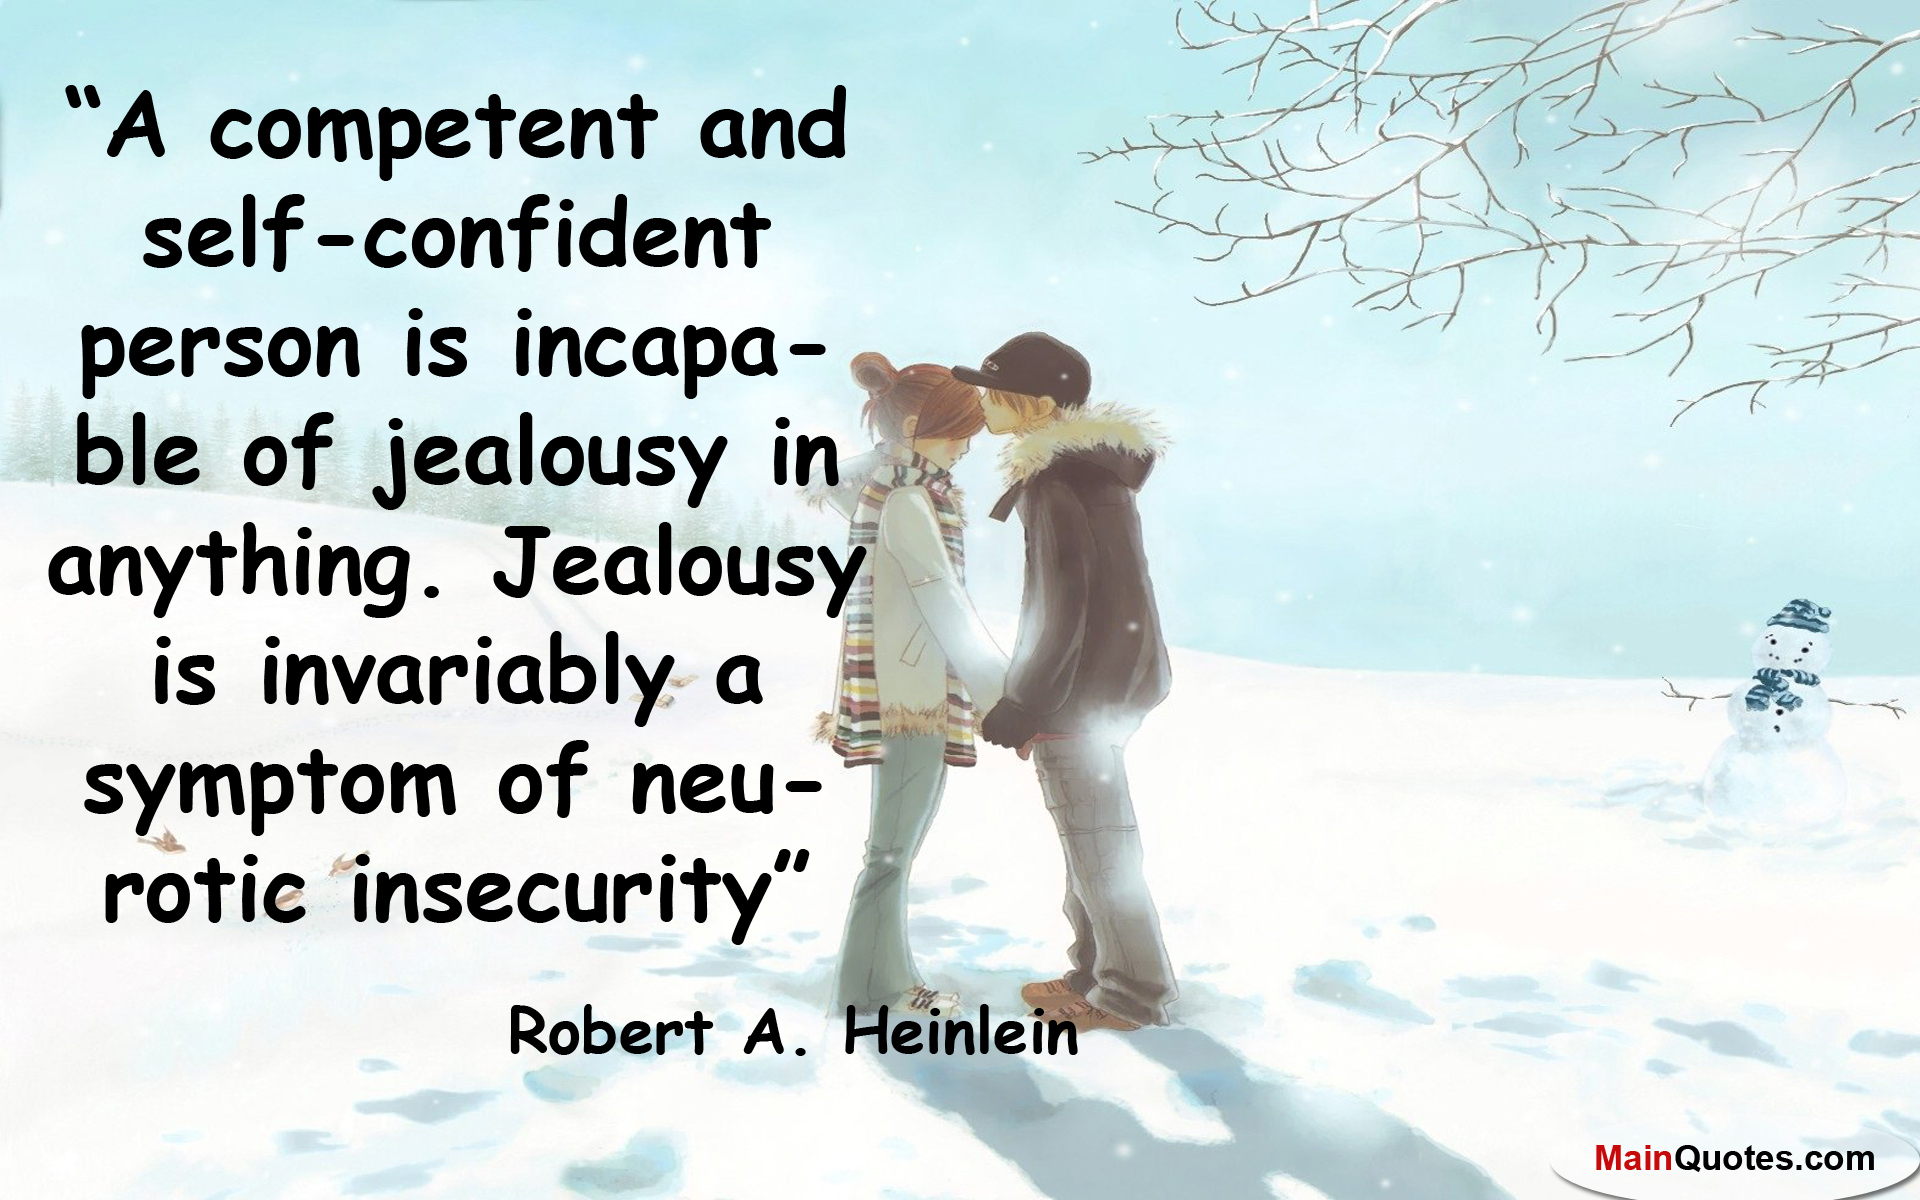 Quotes About Someone Being Jealous. QuotesGram